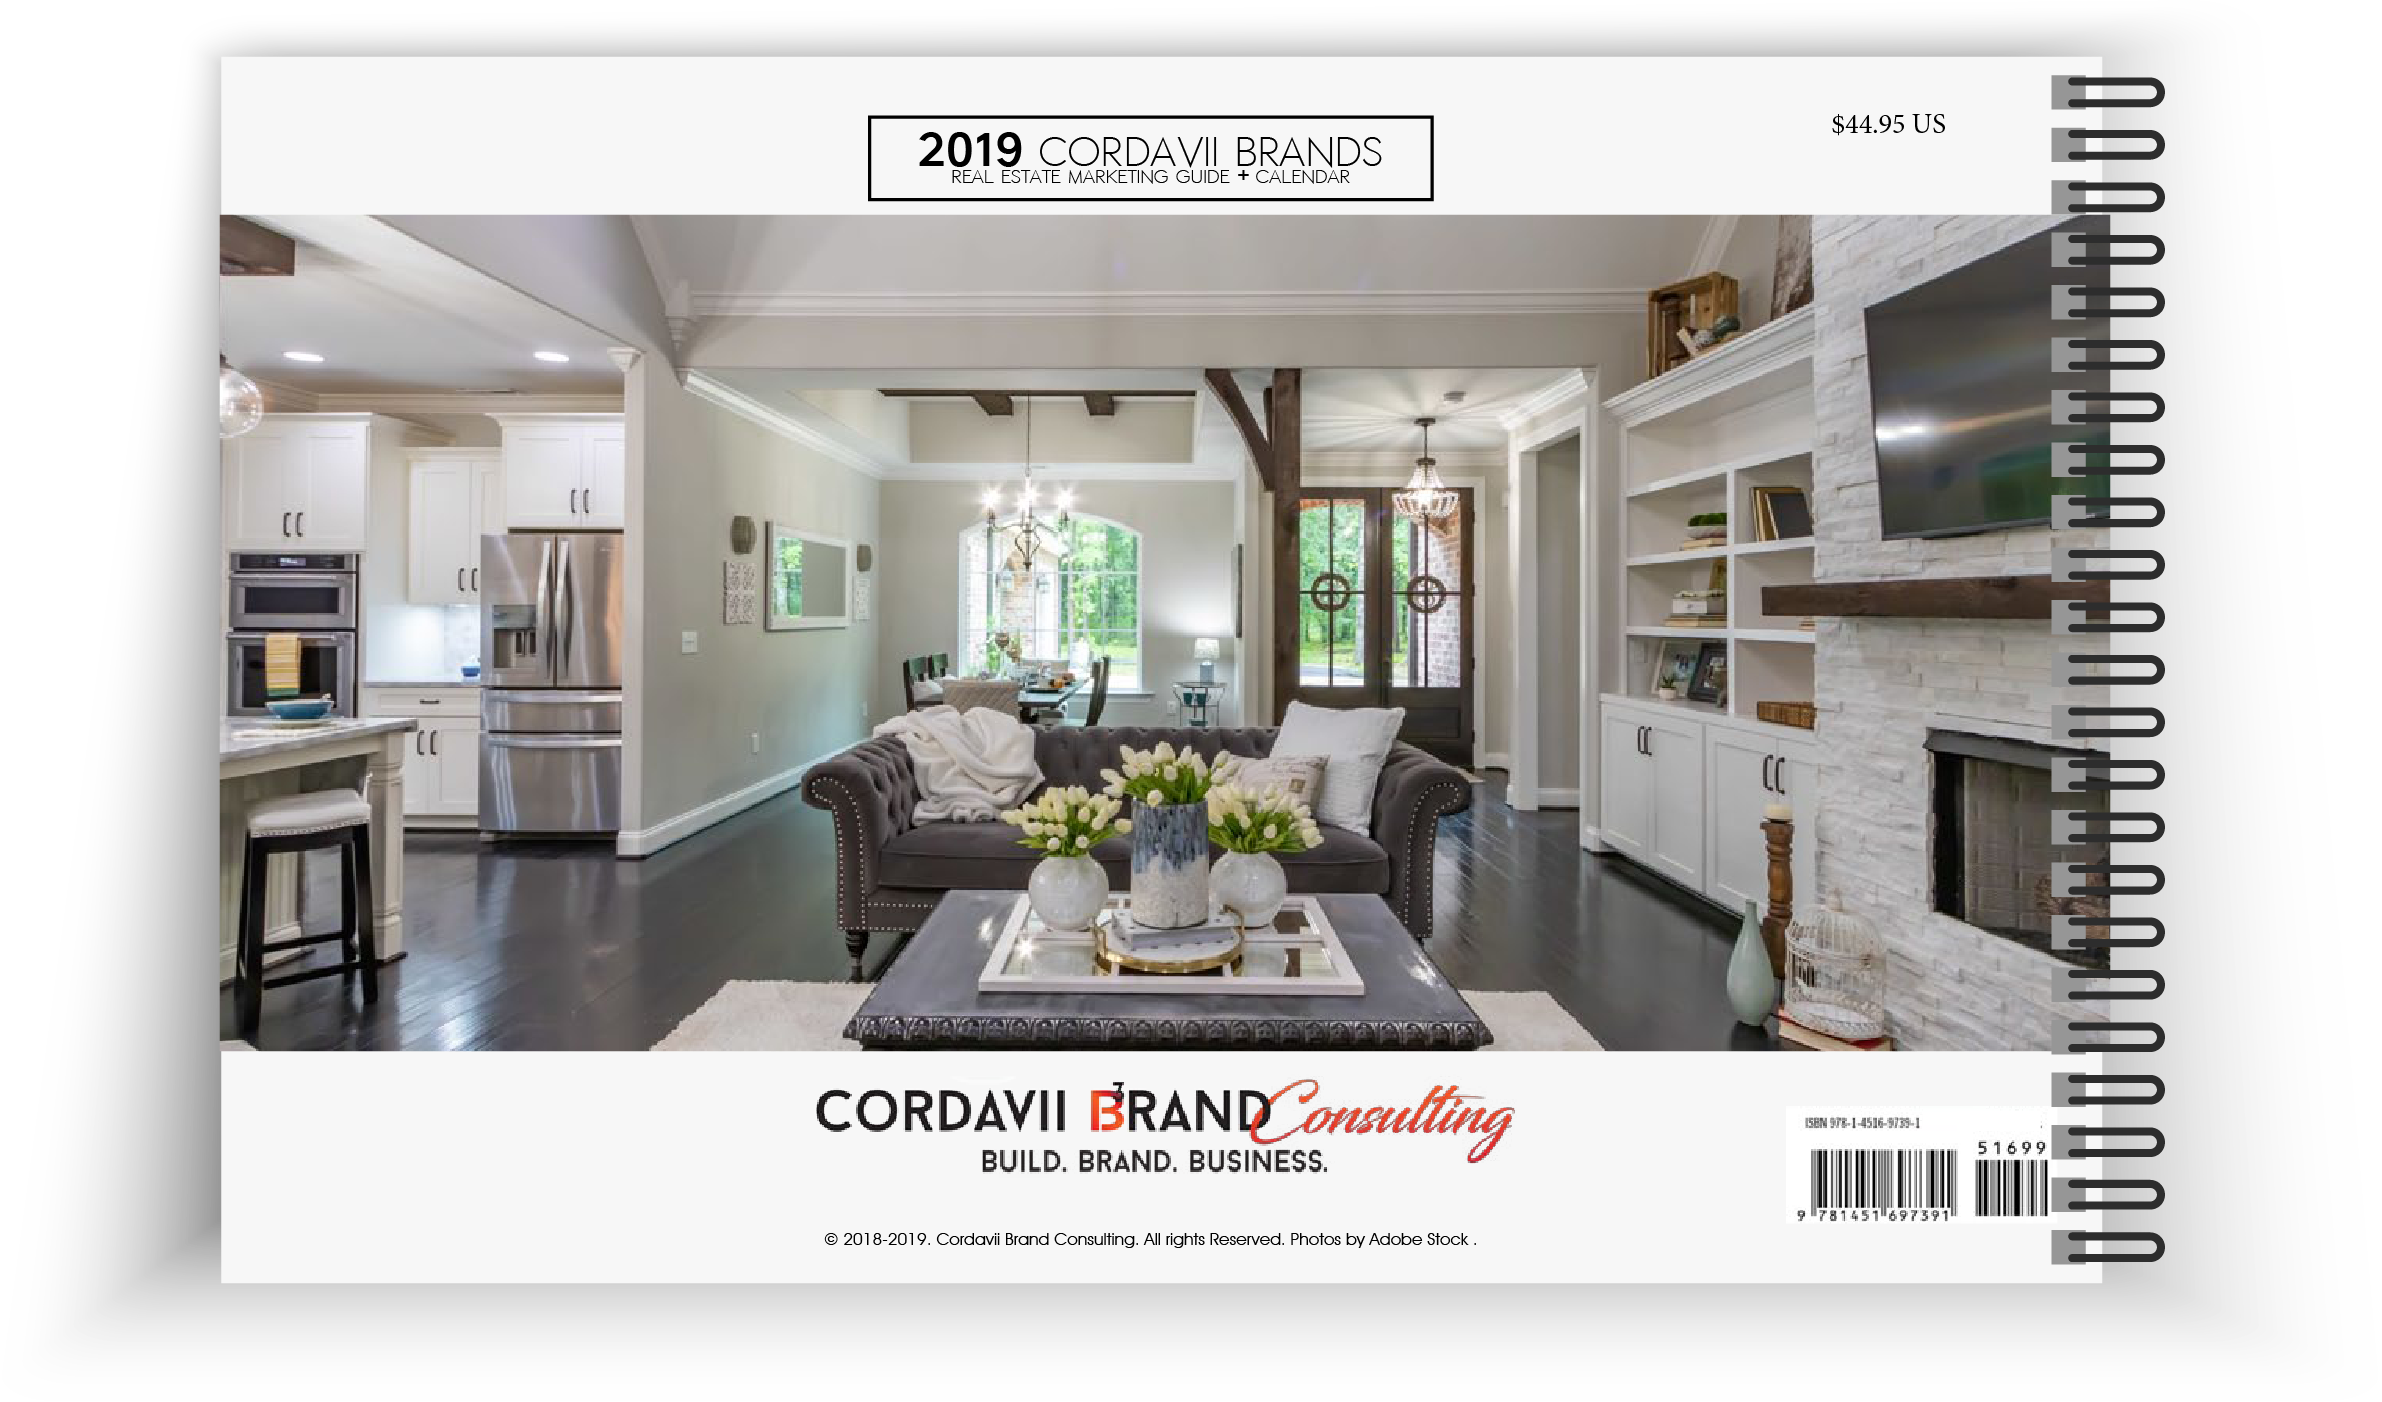 Cordavii 2019 Real Estate Marketing Calendar Back Cover